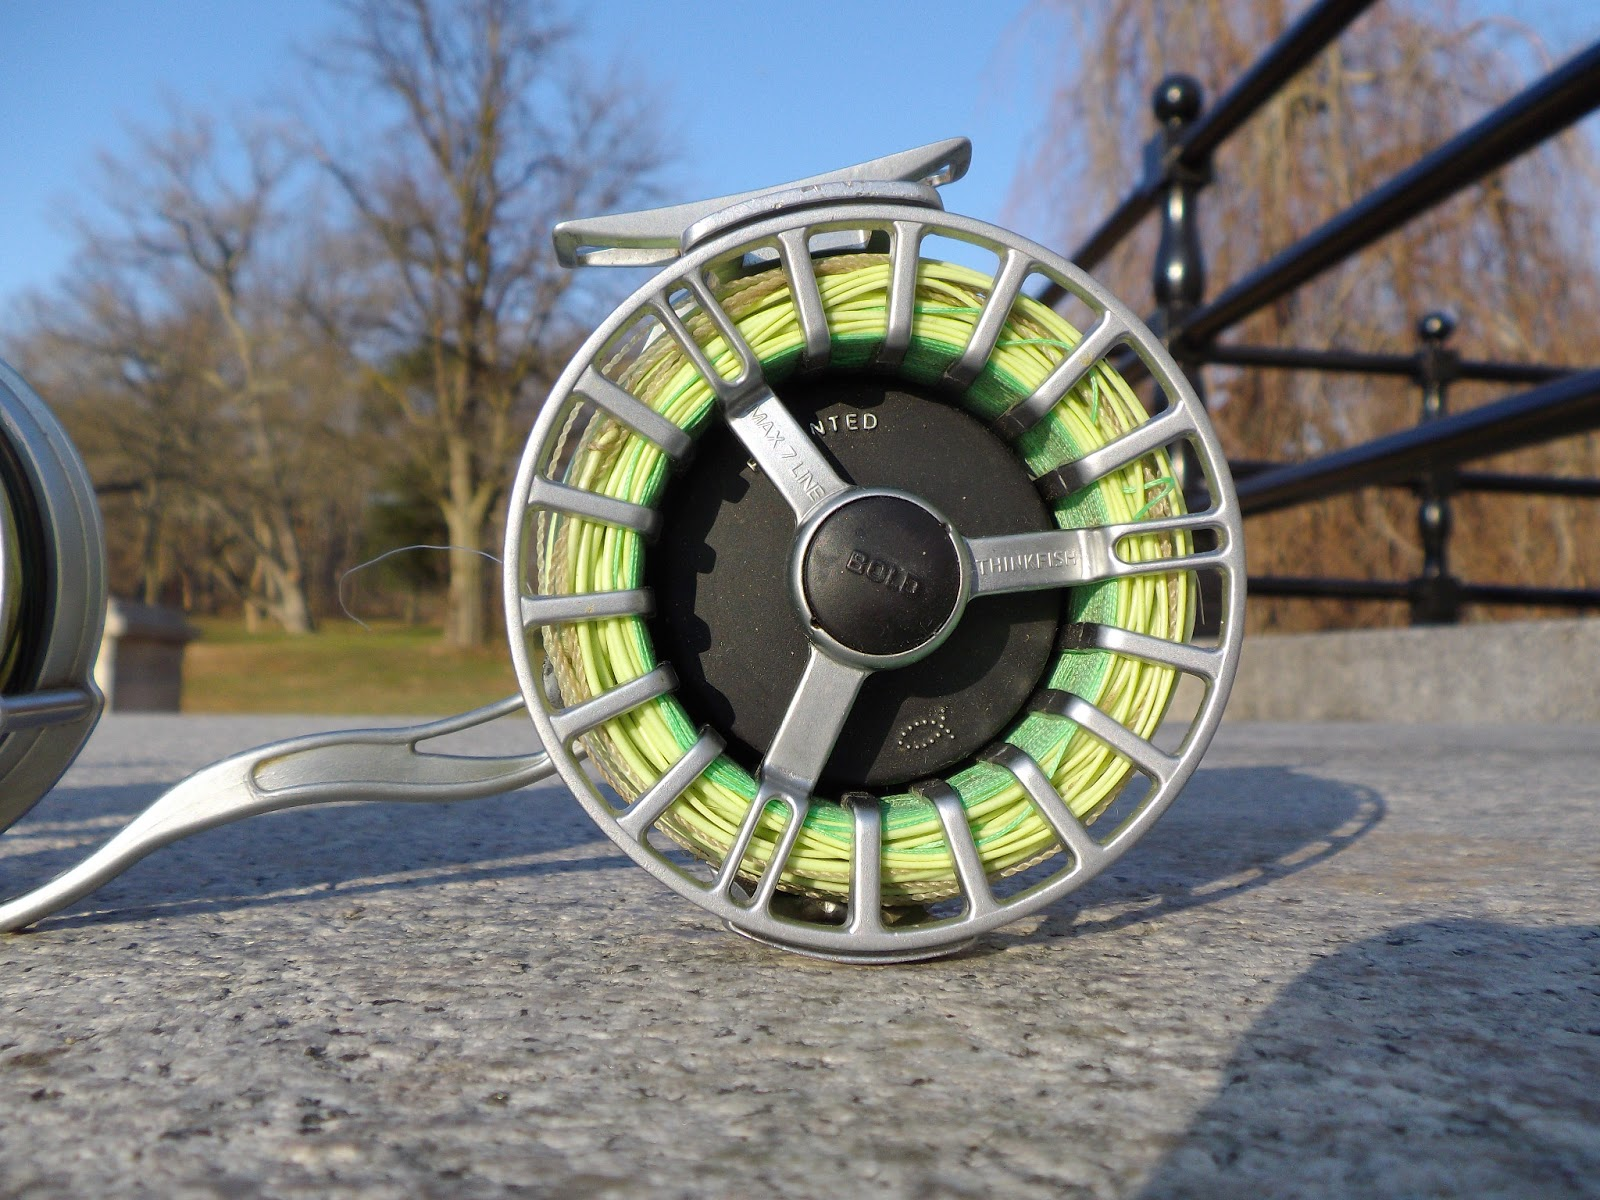 The best semi automatic fly reels the great lakes of nyc for Automatic fishing reel